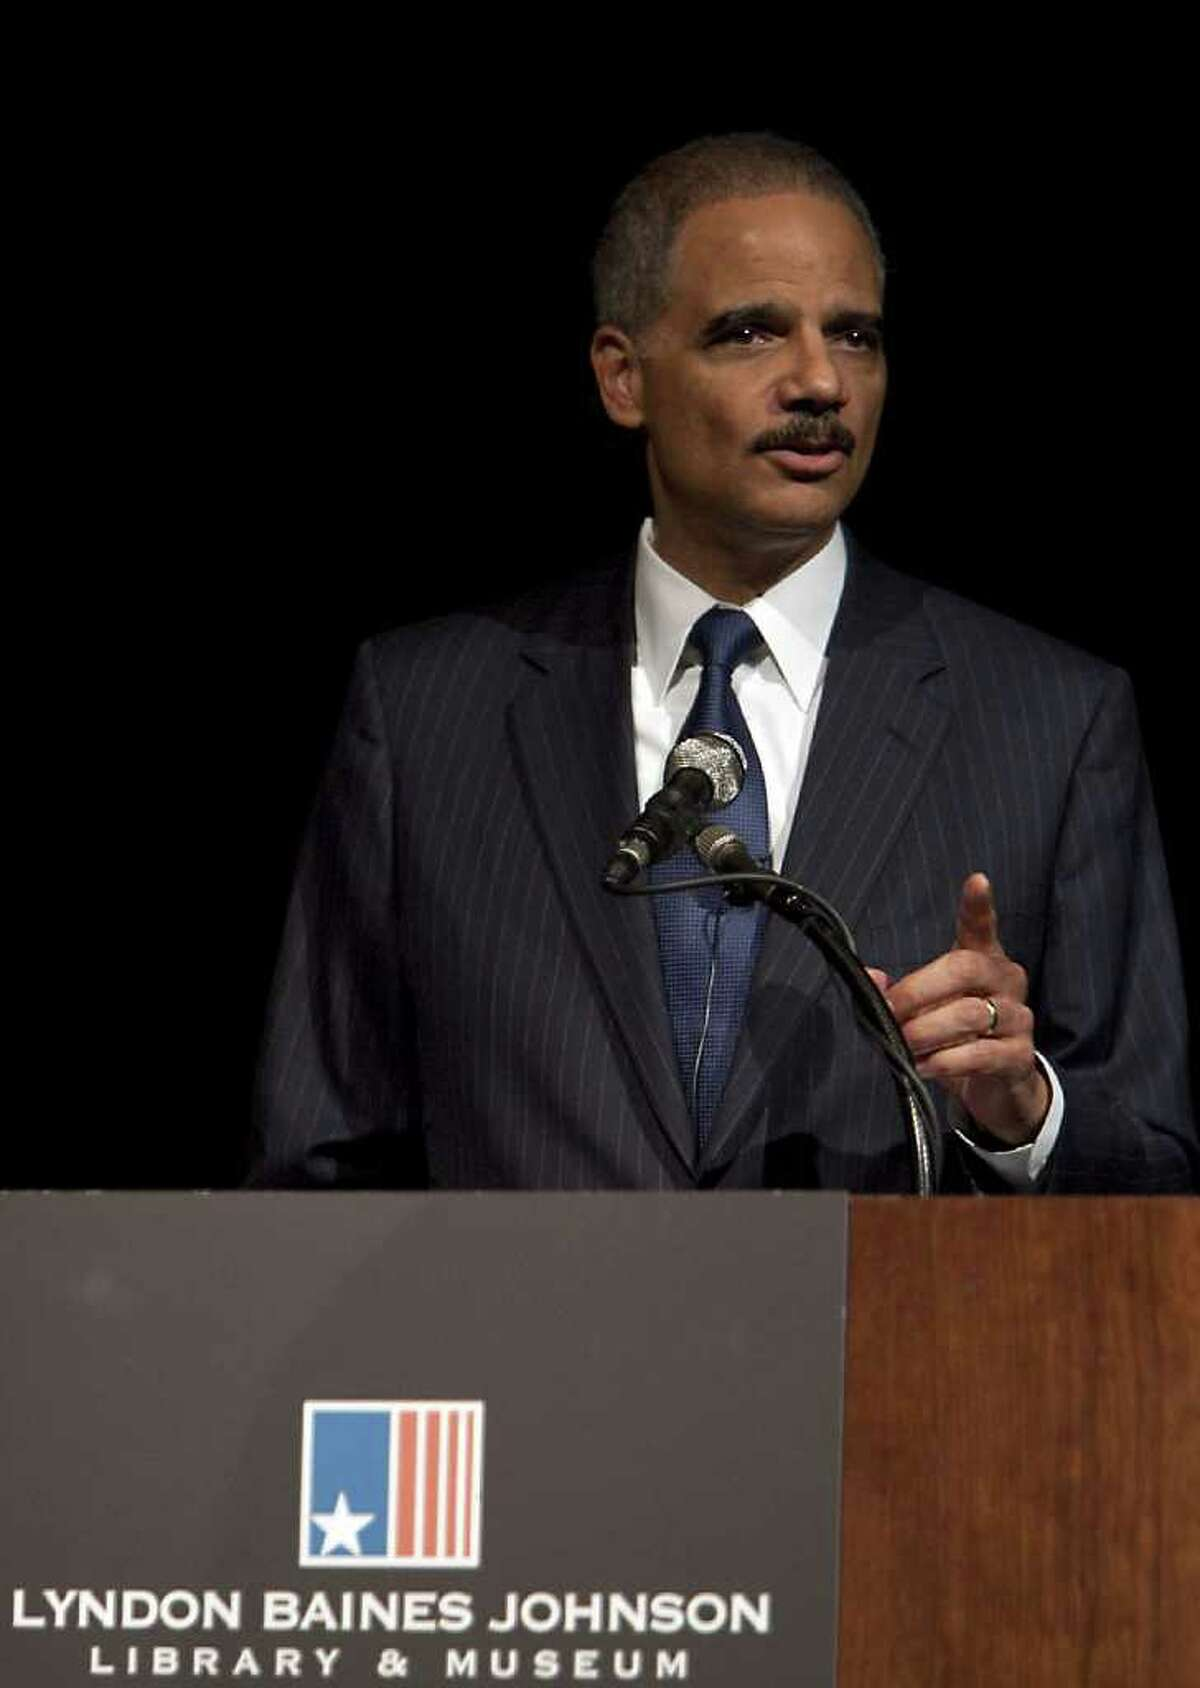 RODOLFO GONZALEZ: AUSTIN AMERICAN-STATESMAN MAKING HIS POINT: Attorney General Eric Holder vowed in his speech Tuesday in Austin to fully enforce civil rights protections in next year's elections amid a flurry of activity by states to redraw political boundaries.